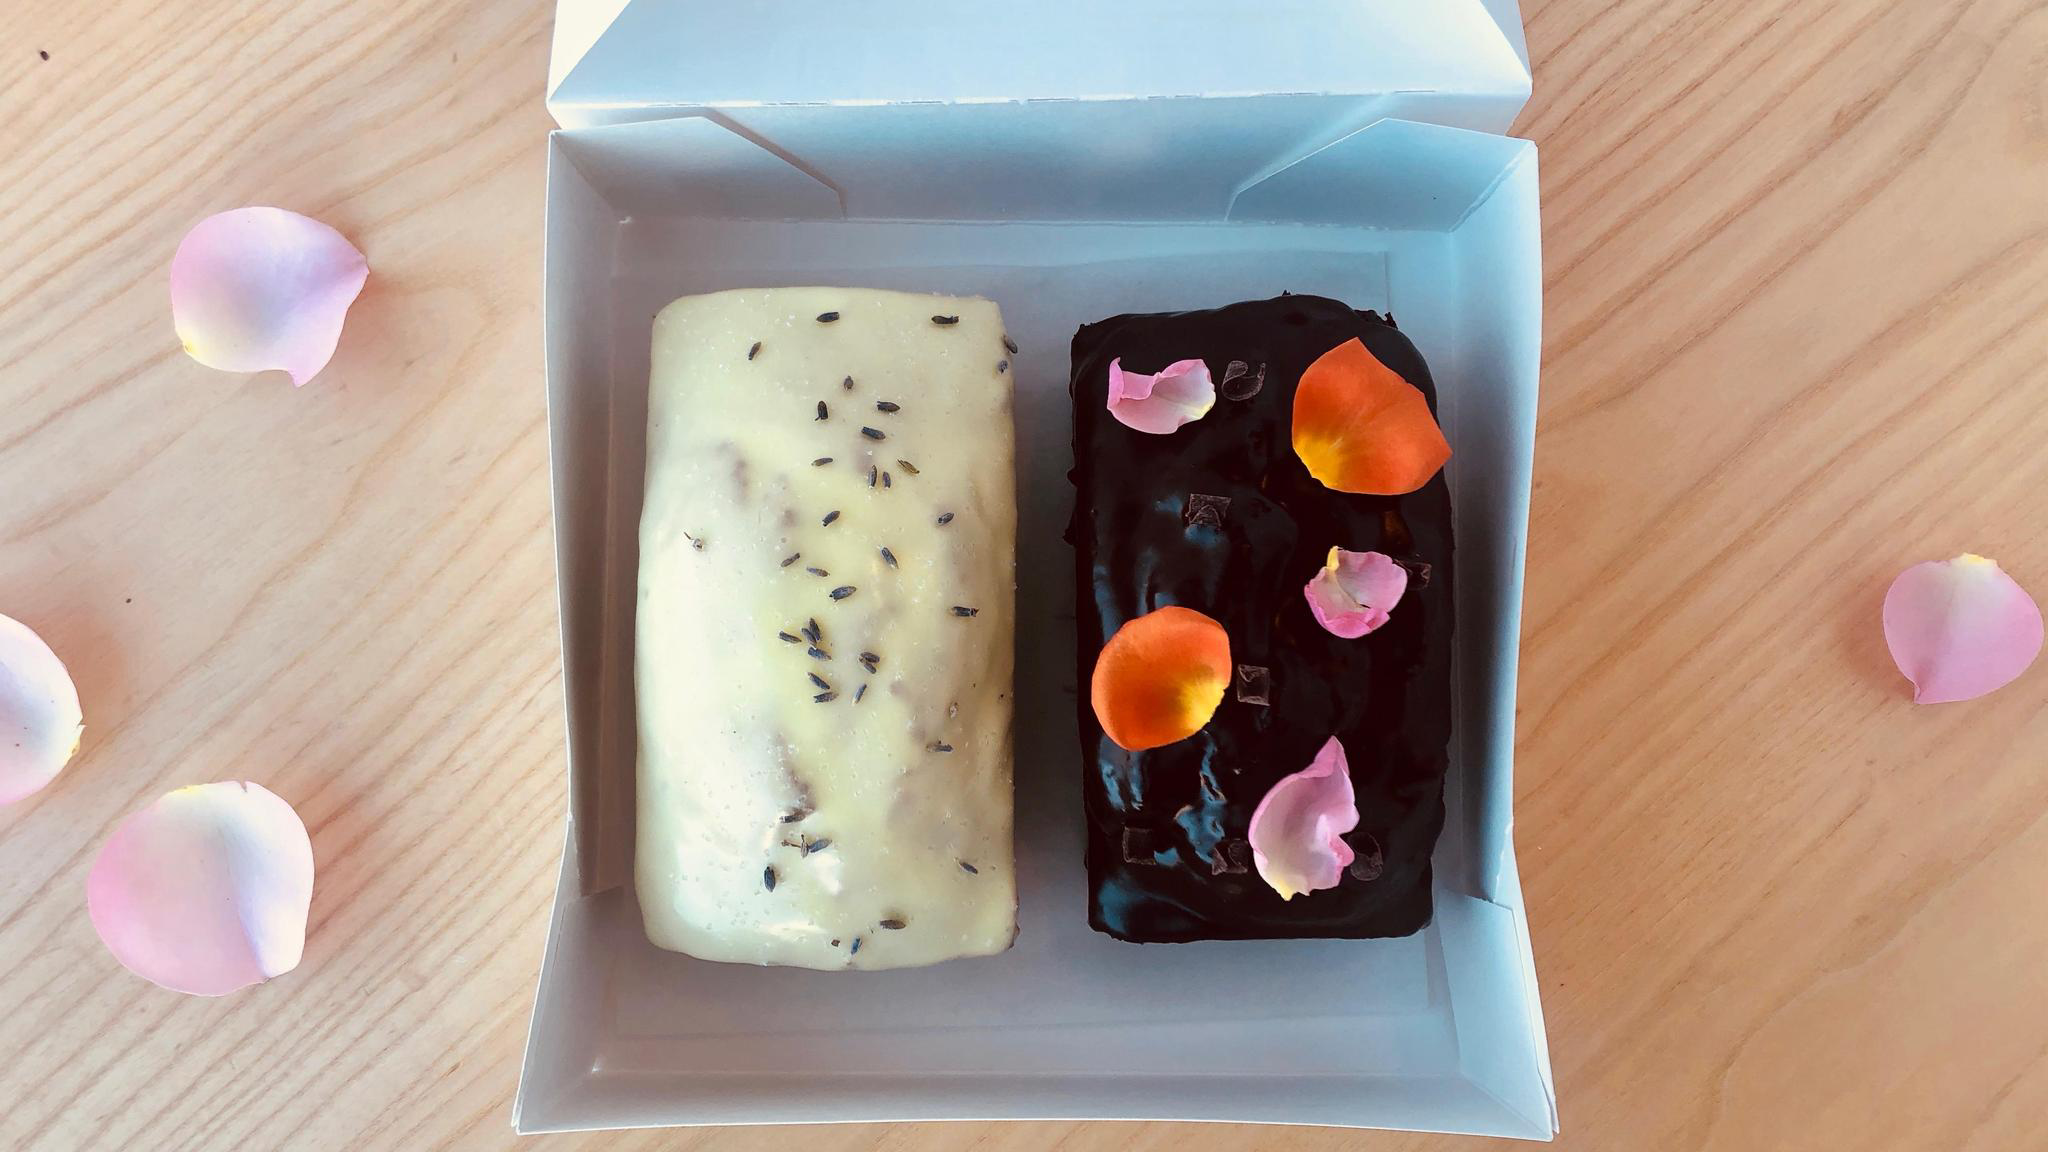 Two tea cakes in a box surrounded by flower petals.